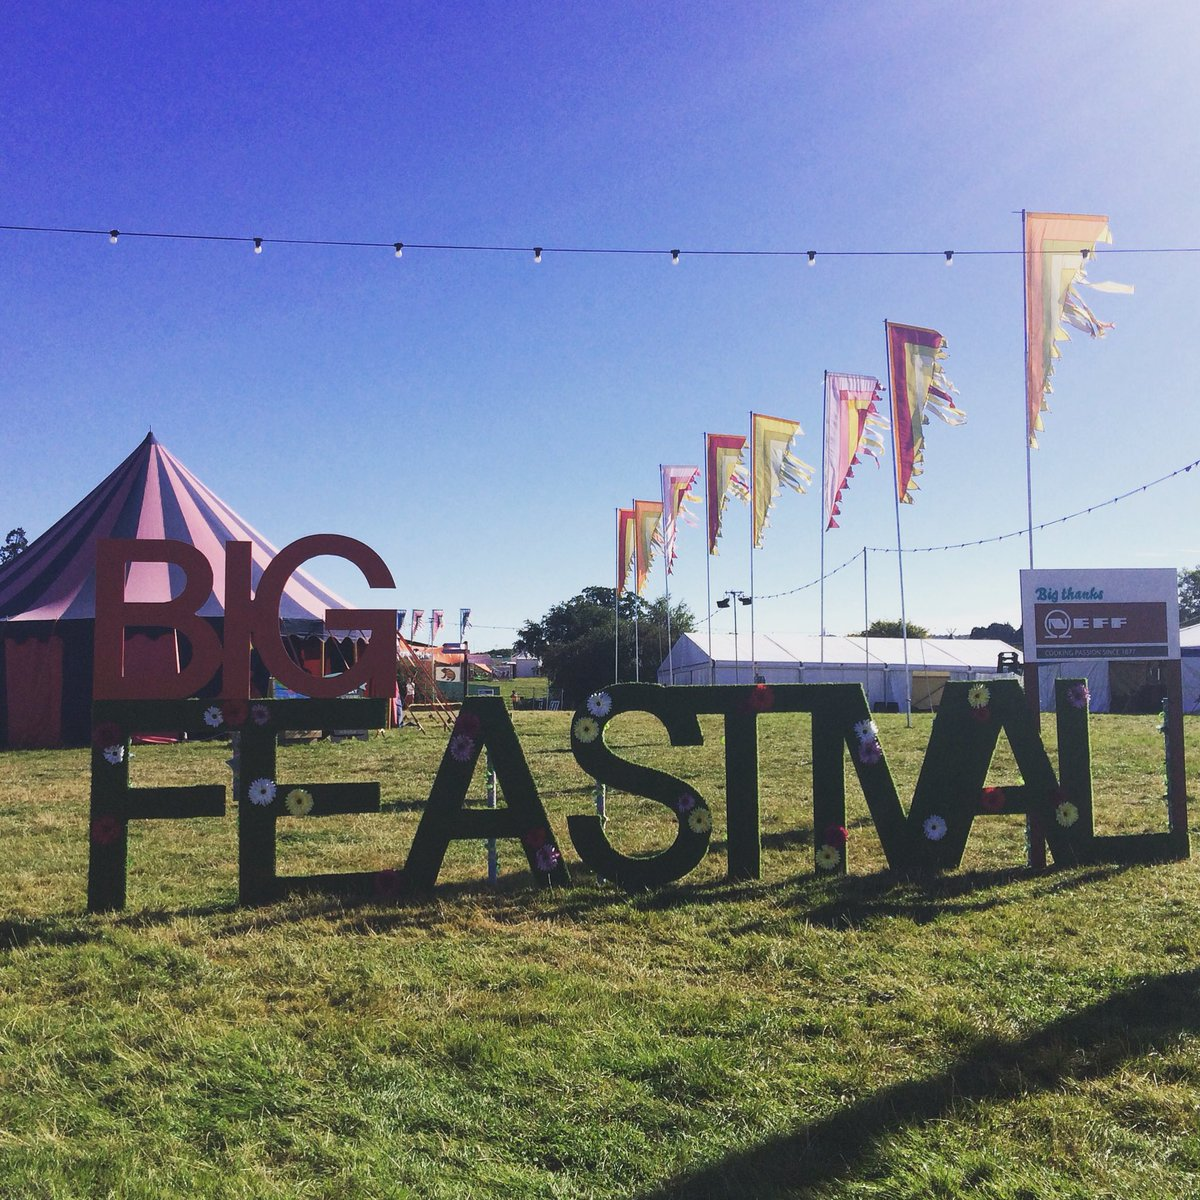 RT @thebigfeastival: #thebigfeastival 2016 we are ready for ya!!! ☀️ https://t.co/wCjusiOlJR